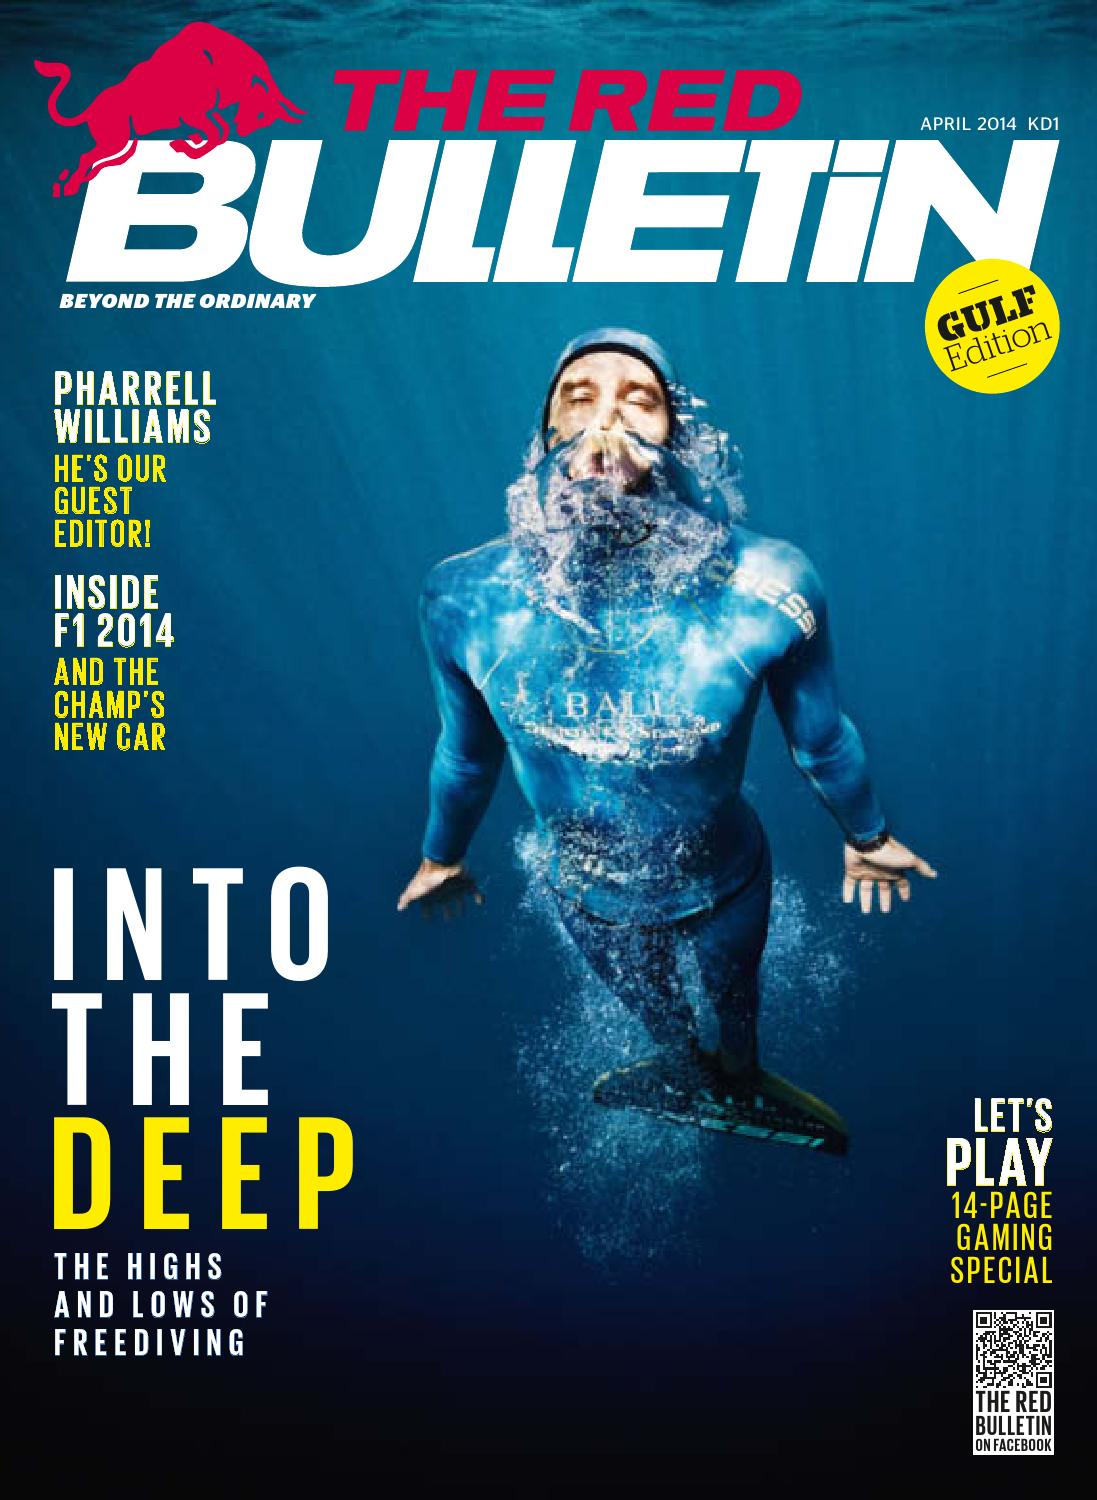 The Red Bulletin April 2014 - KW by Red Bull Media House - issuu